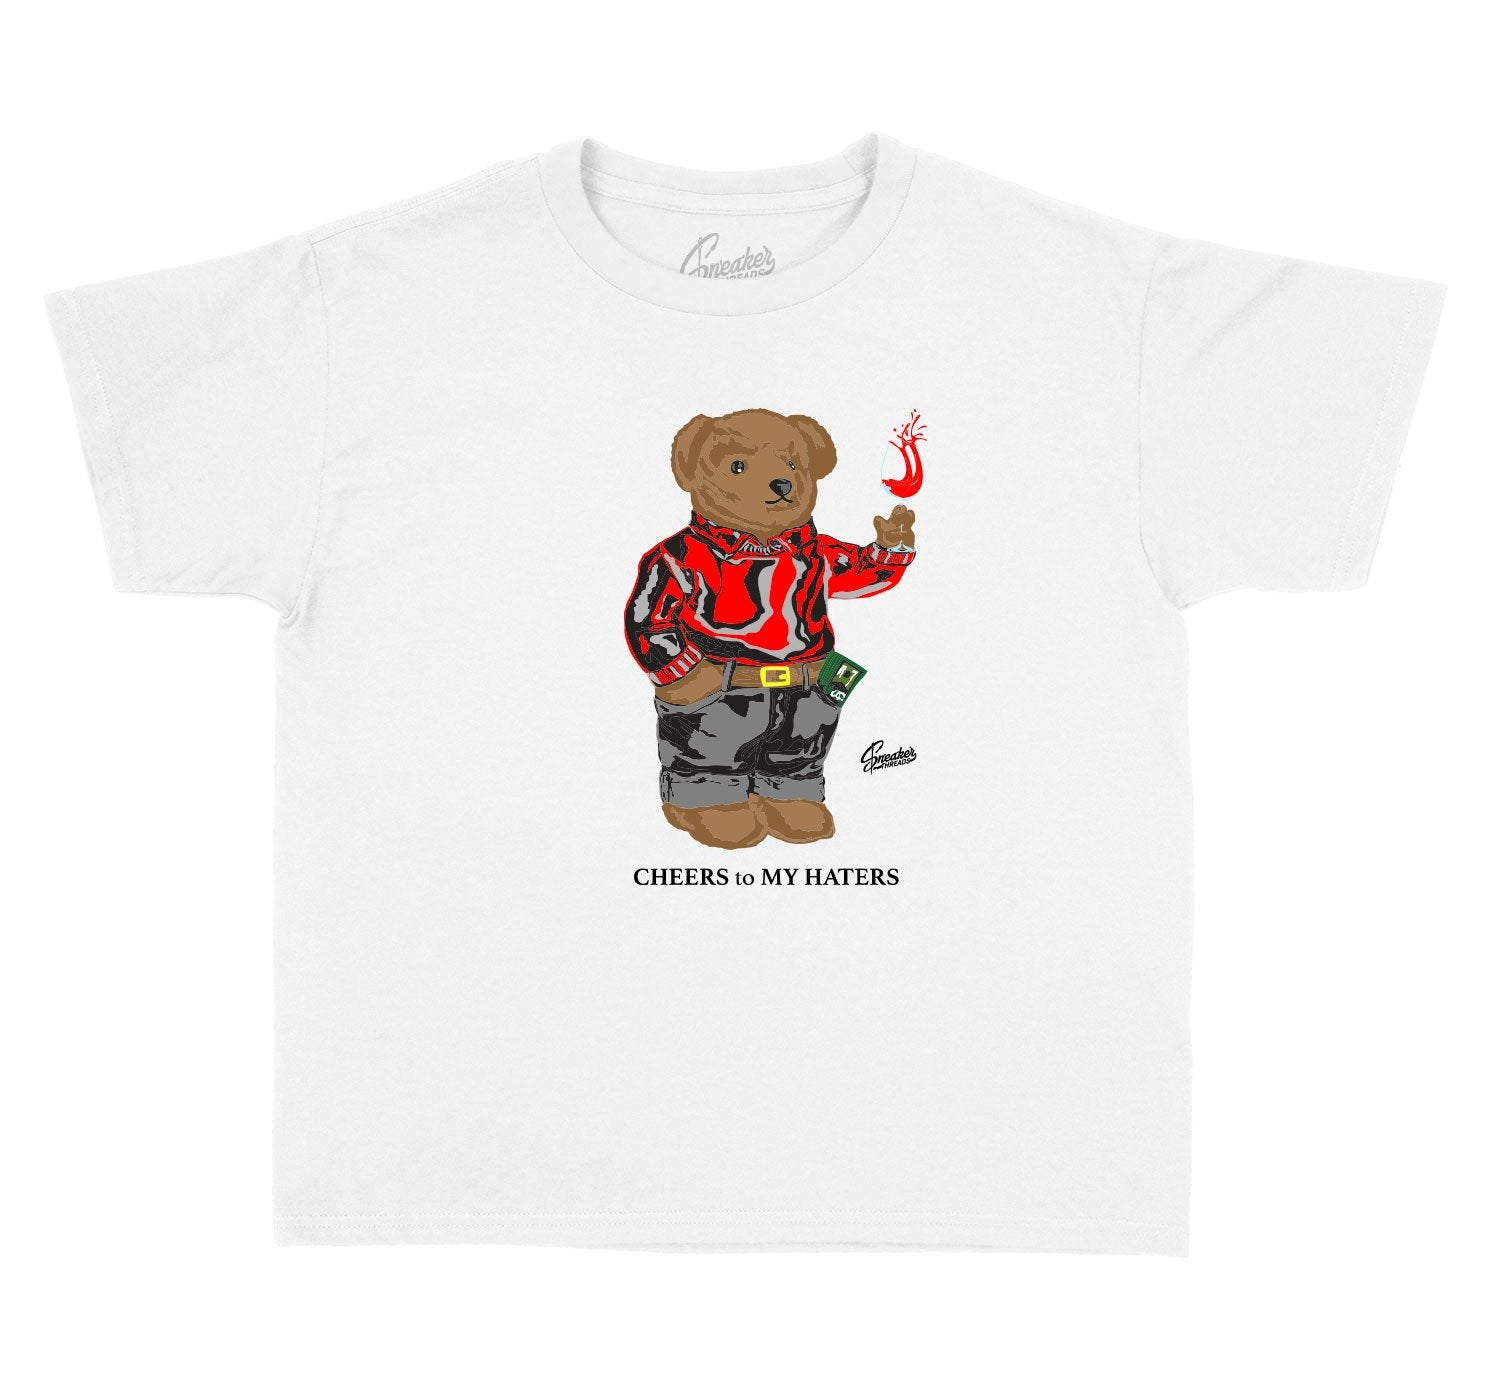 collection of shirts made for kids made to match the sneaker yeezy v2 black